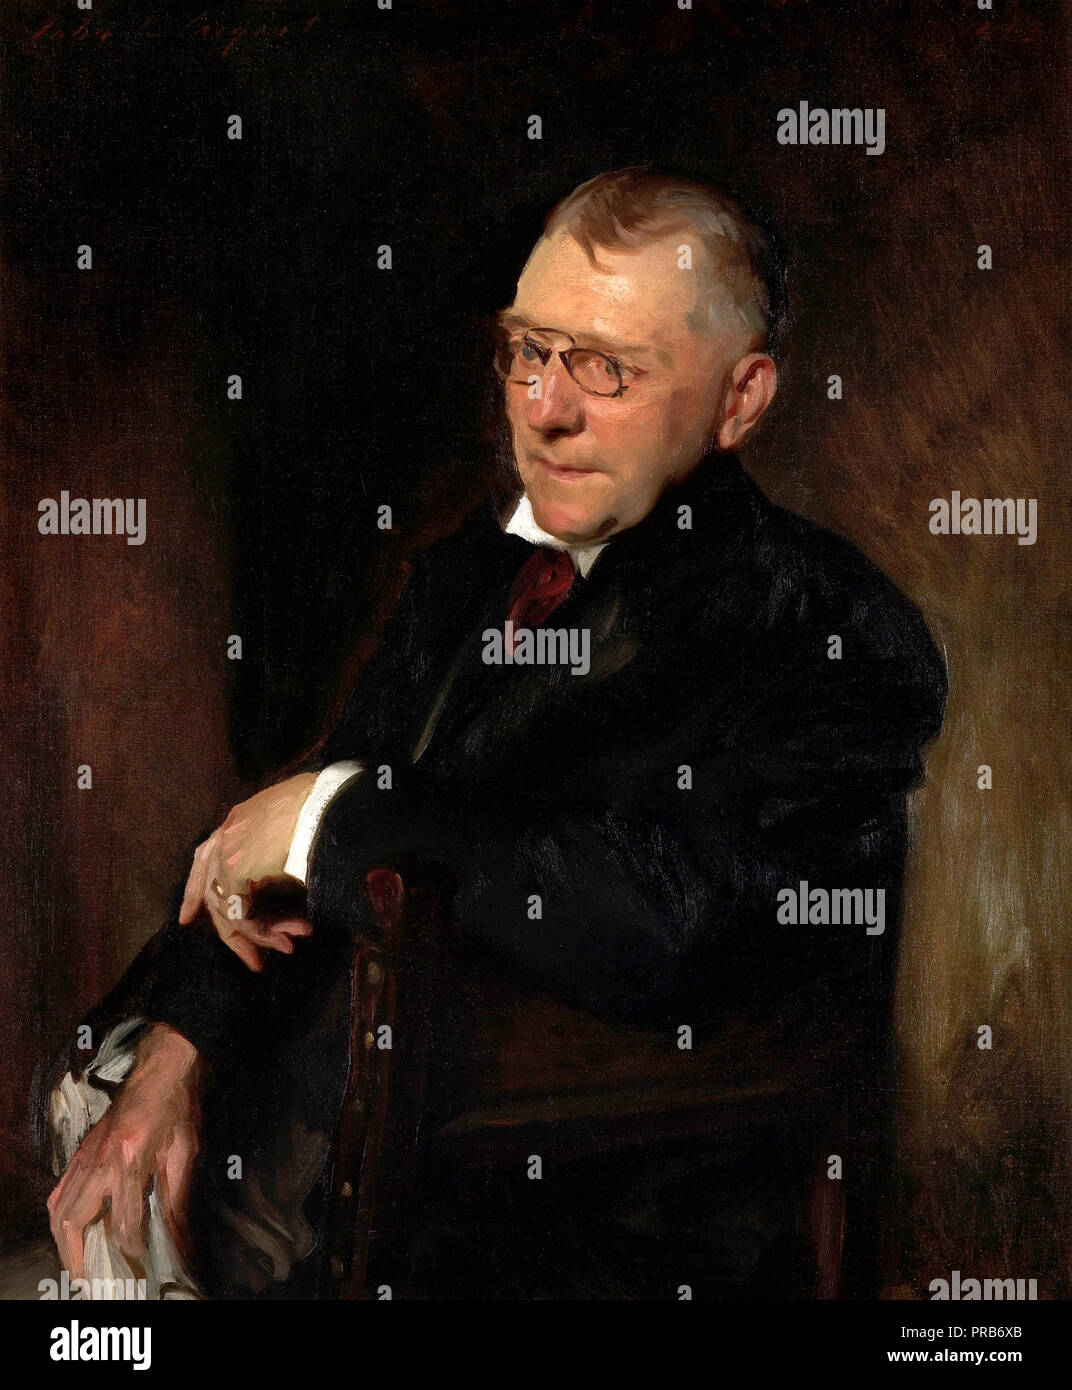 John Singer Sargent, Portrait of James Whitcomb Riley 1903 Oil on canvas, Indianapolis Museum of Art, USA. - Stock Image